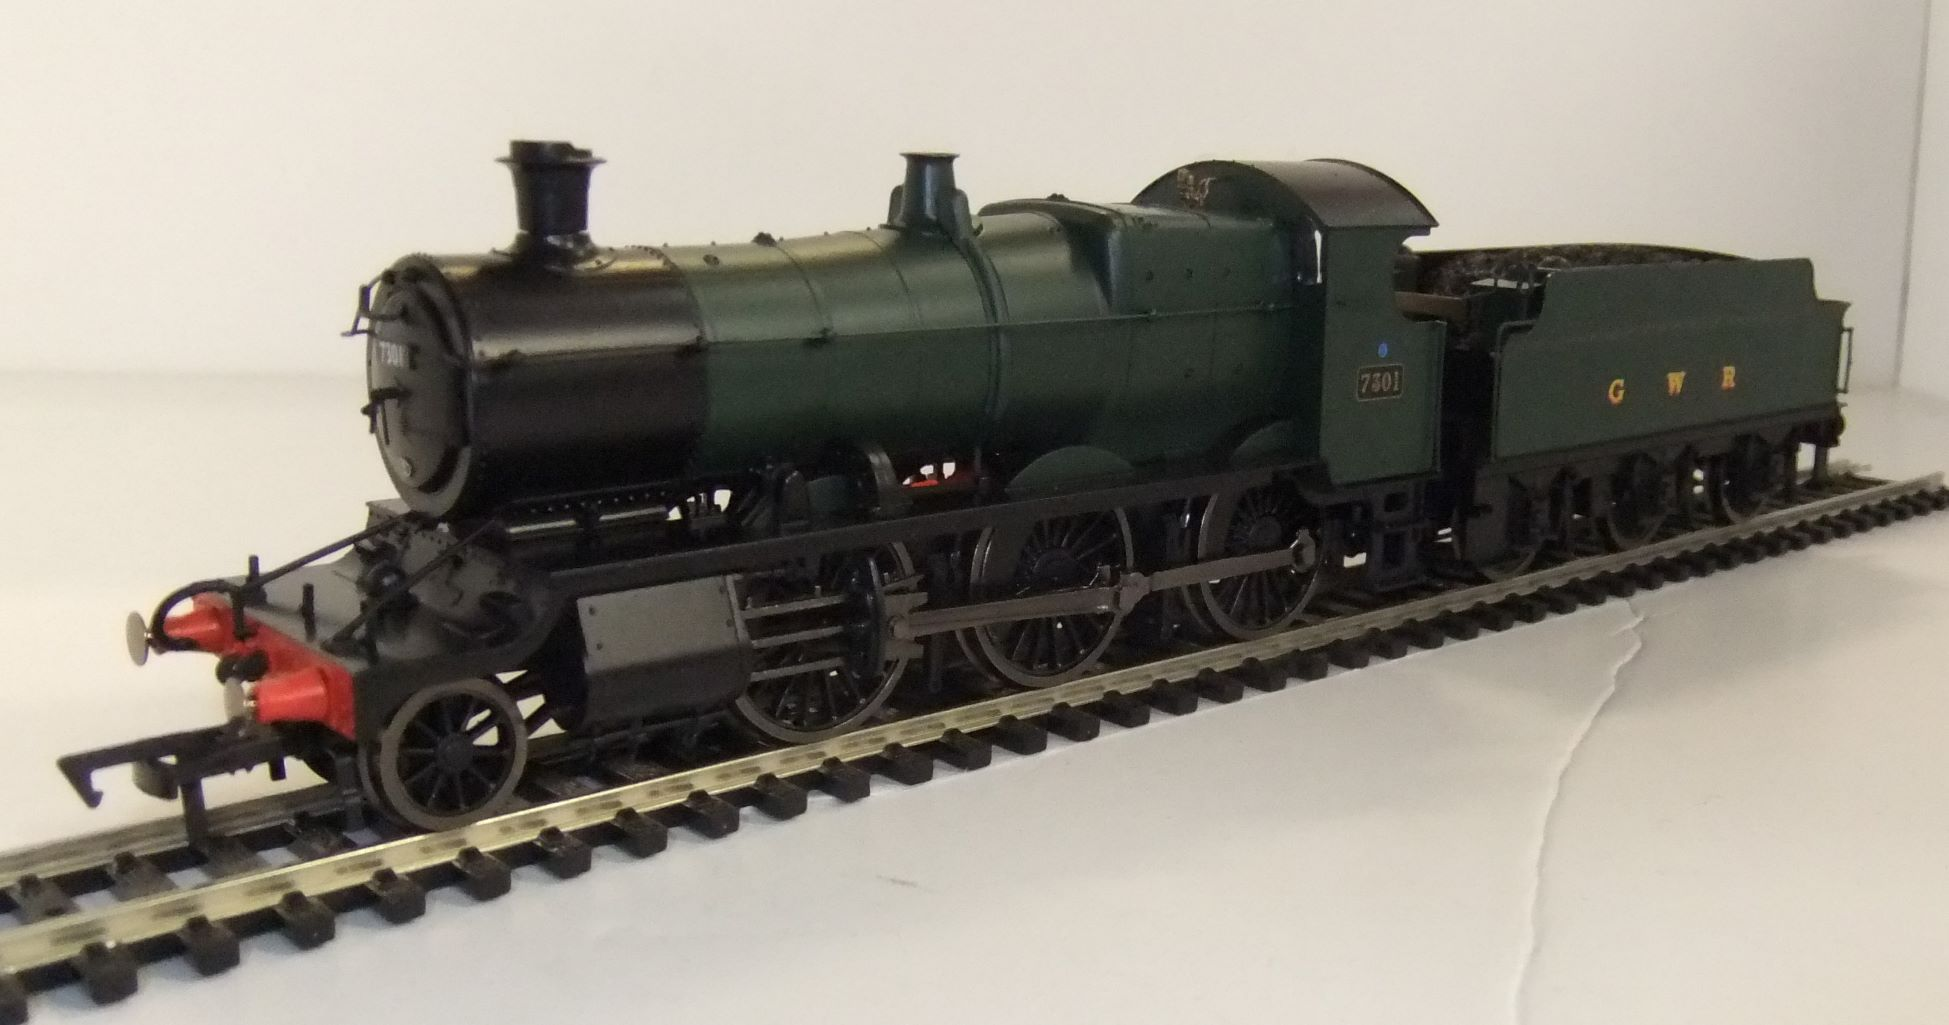 4S-043-003D BR Mogul no.7301 Green with GWR on tender DCC fitted